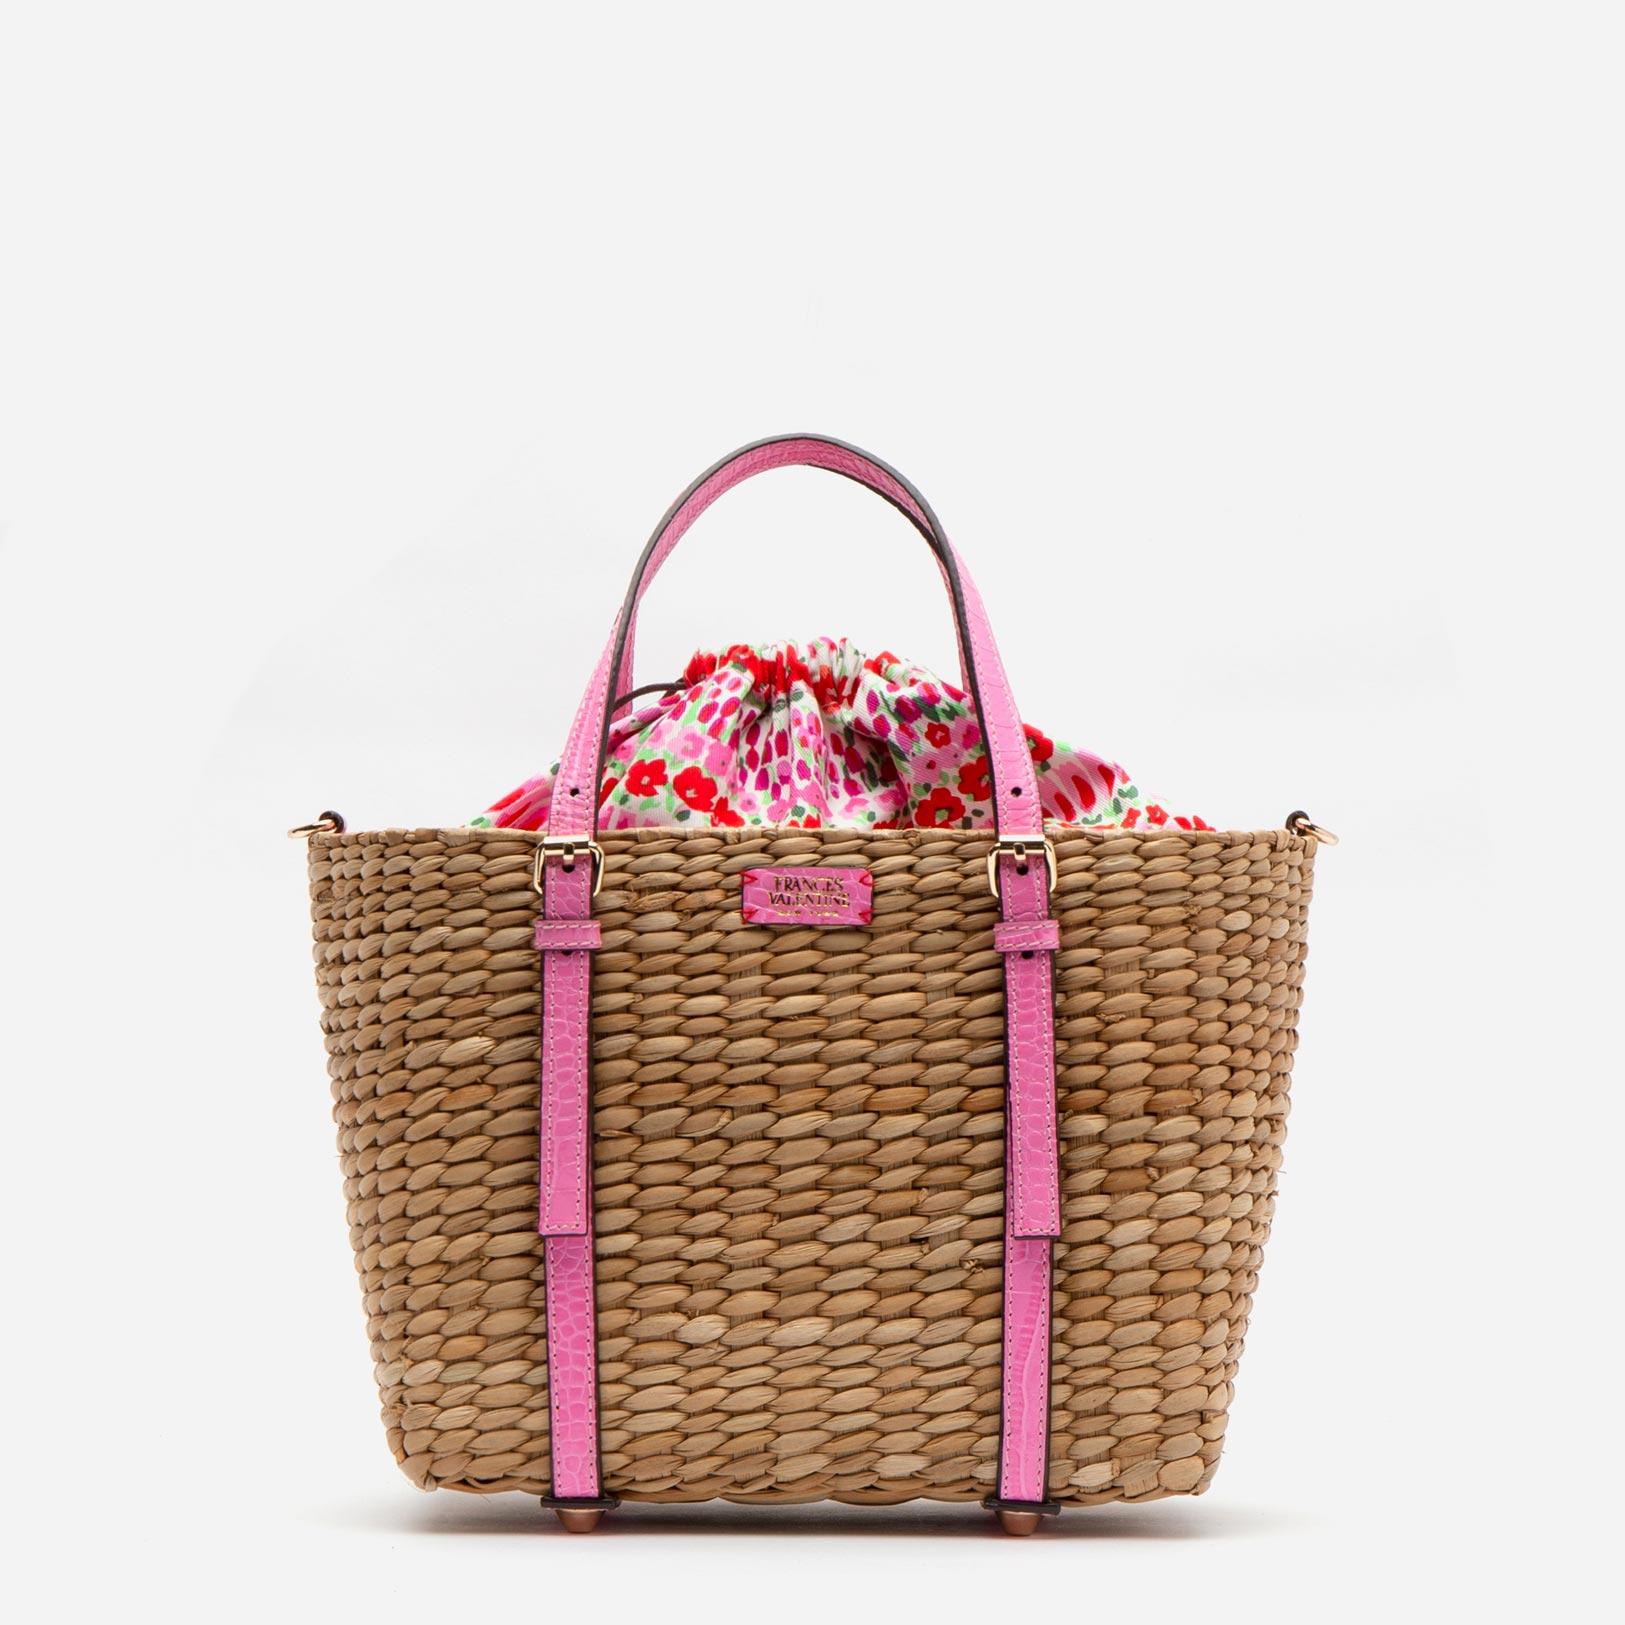 Small Woven Basket Tote Croc Embossed Leather Pink - Frances Valentine